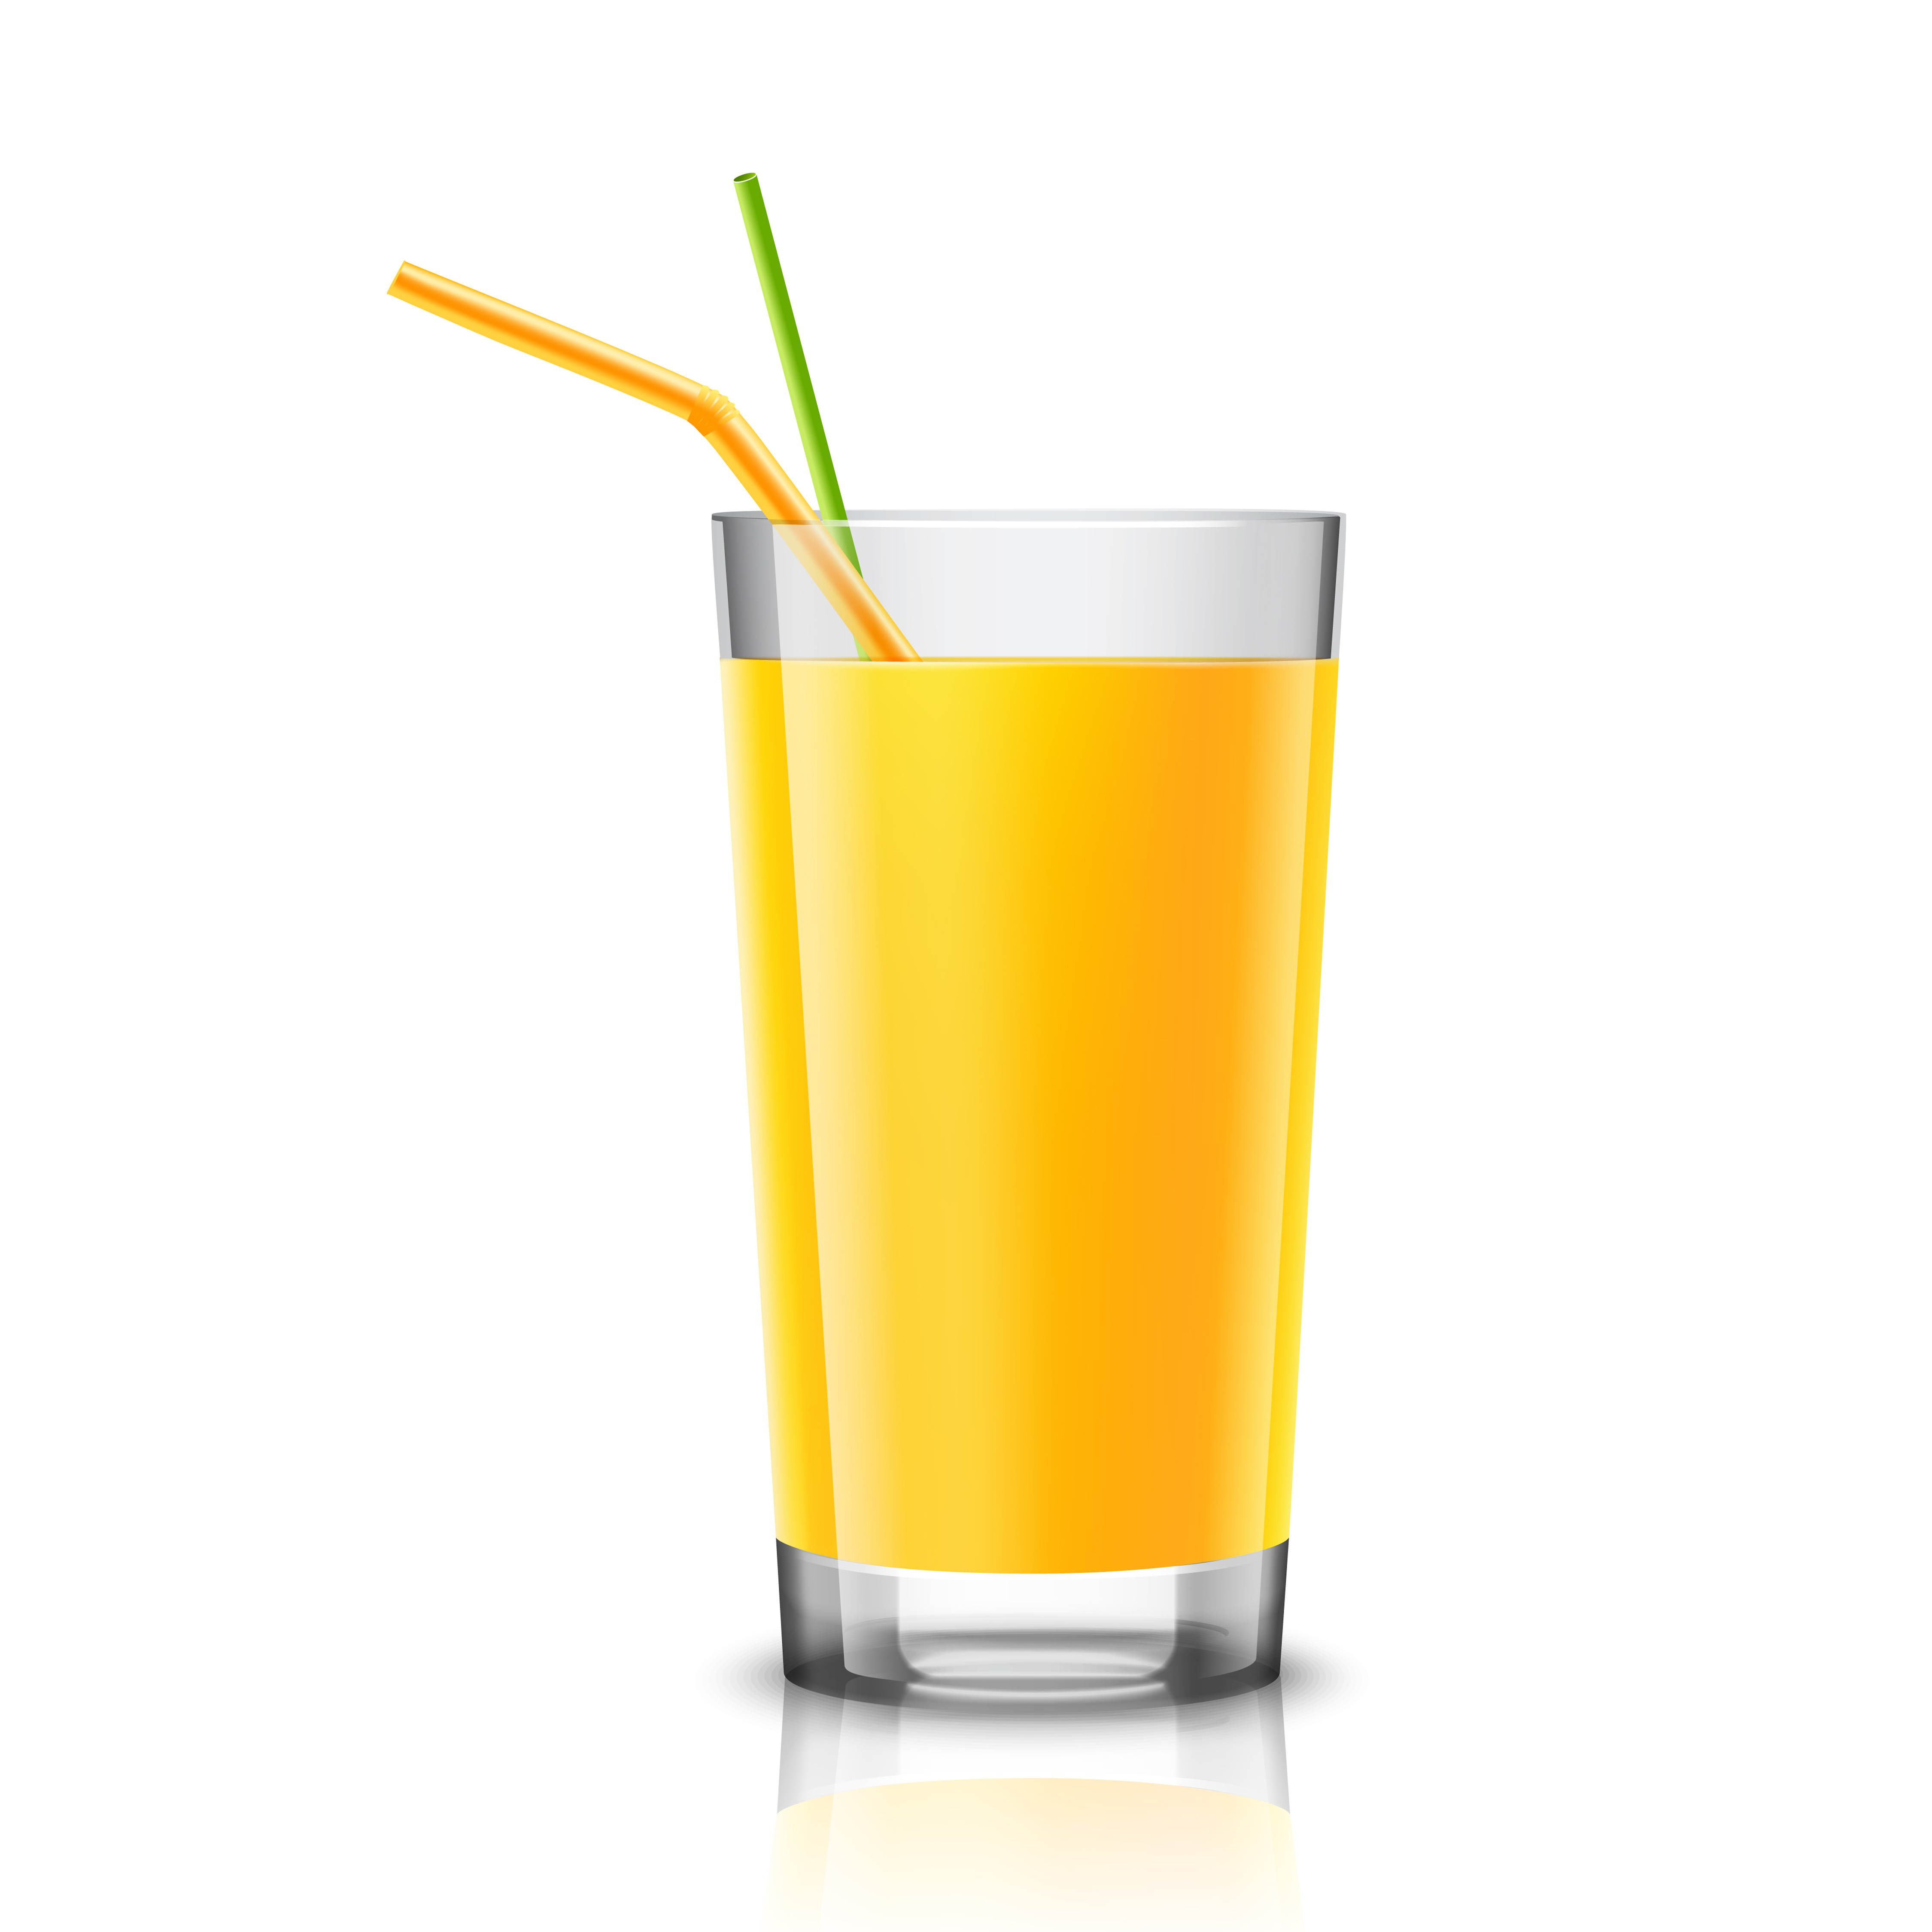 Orange juice glass - Download Free Vectors, Clipart ...